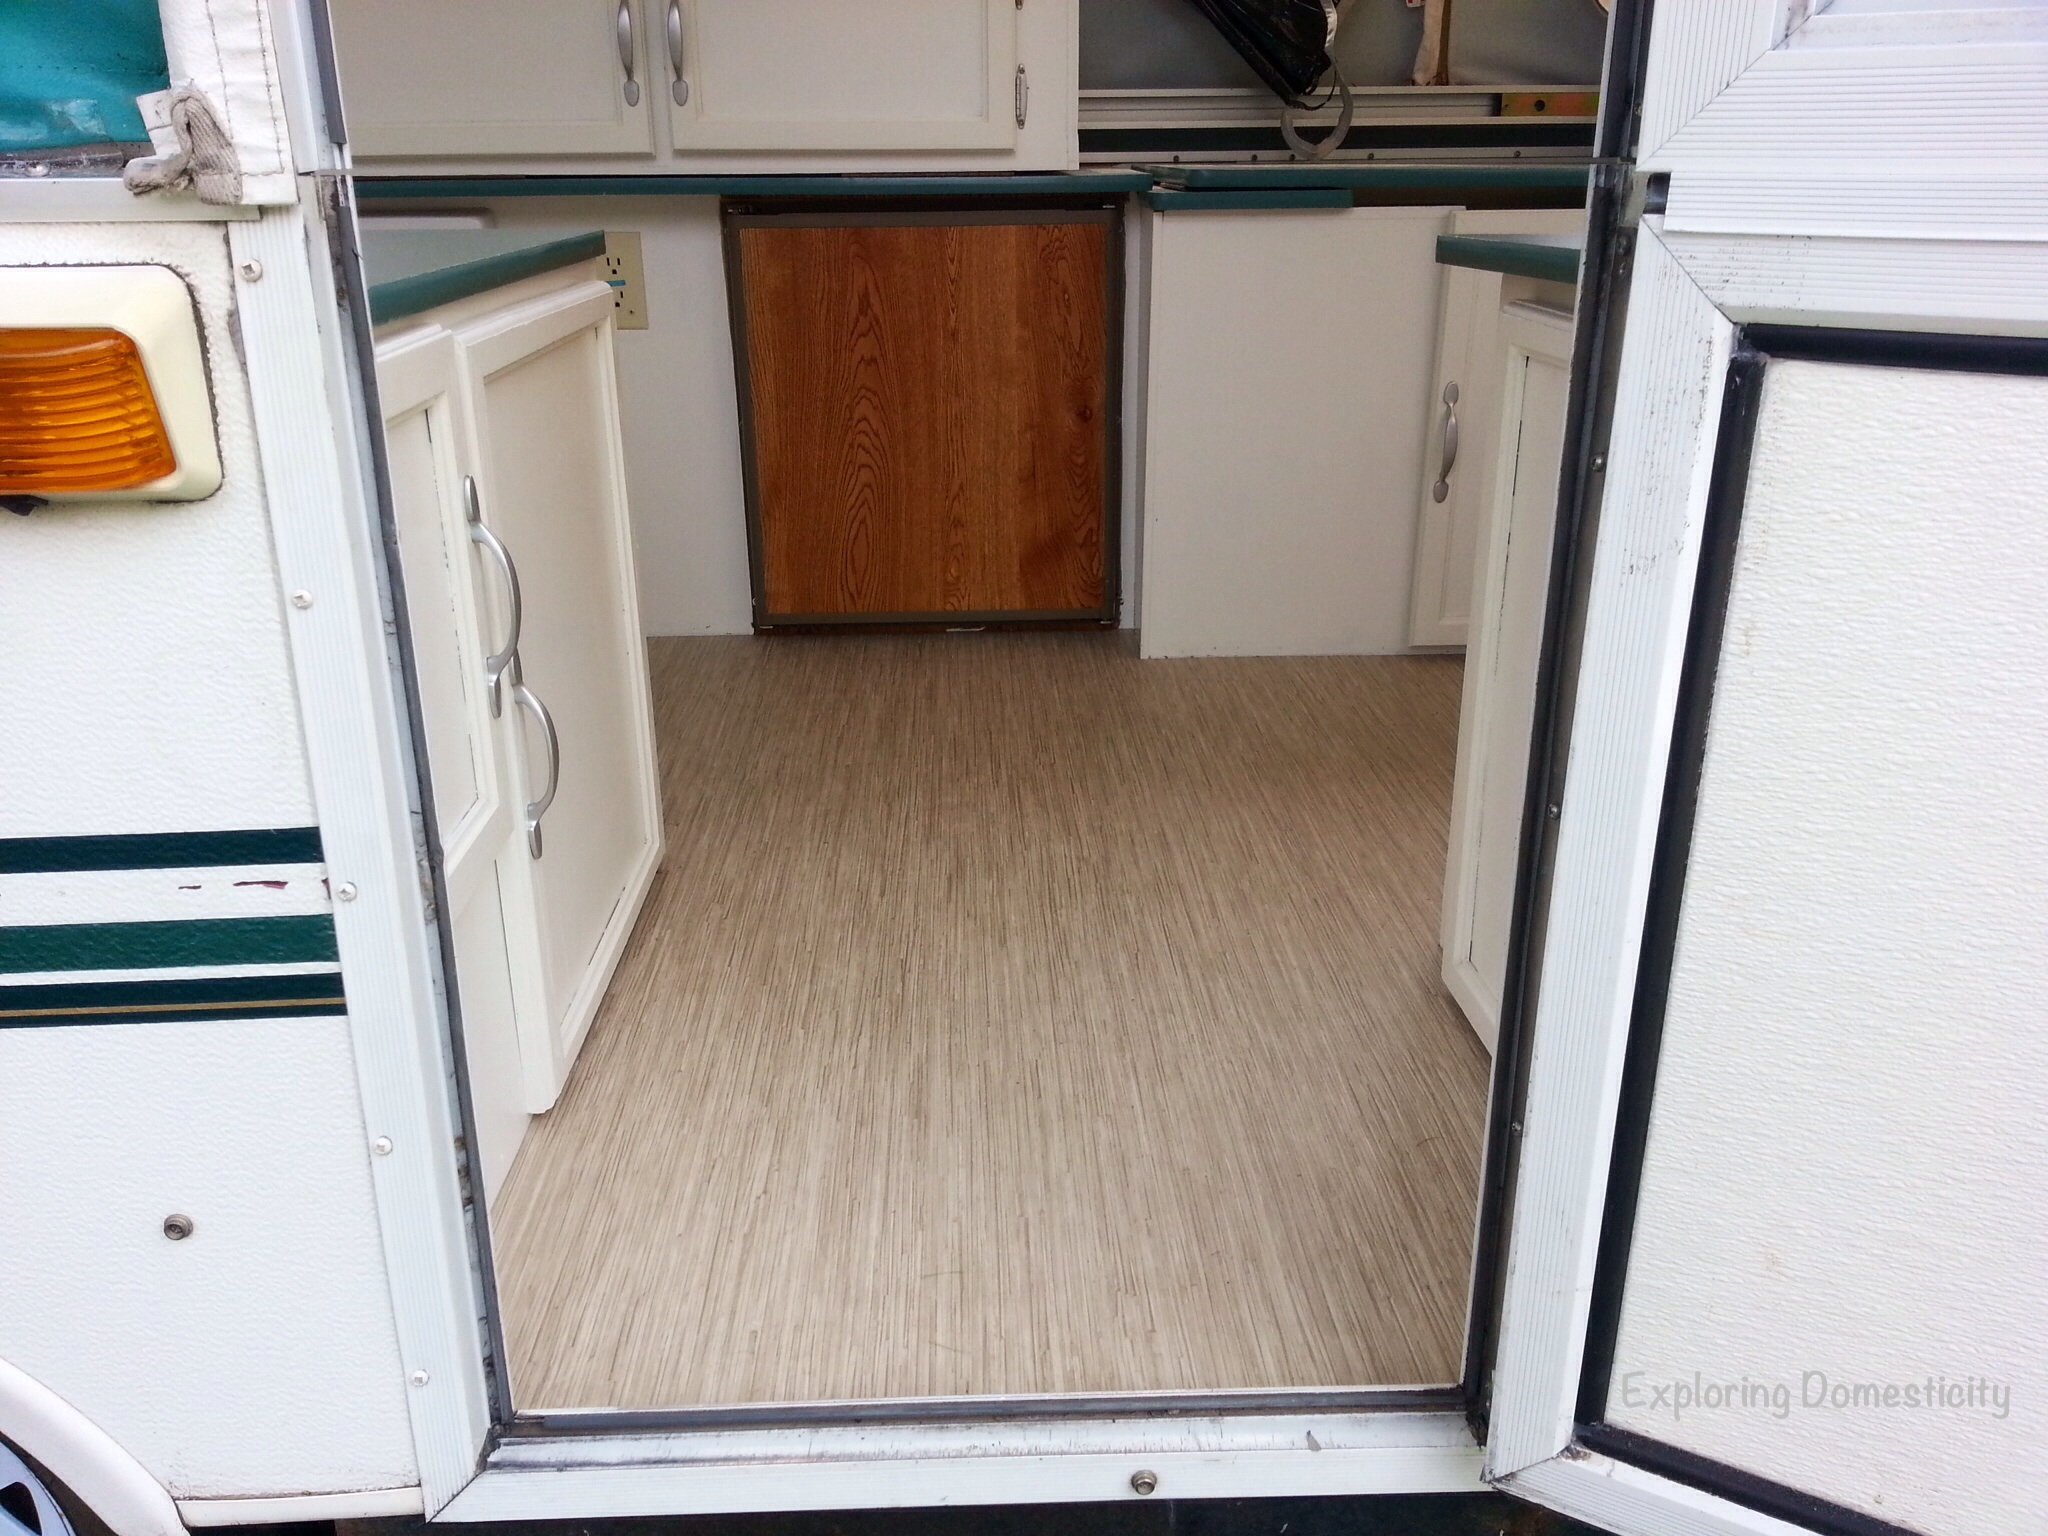 Pop Up Camper Remodel Painting And Flooring Exploring Domesticity